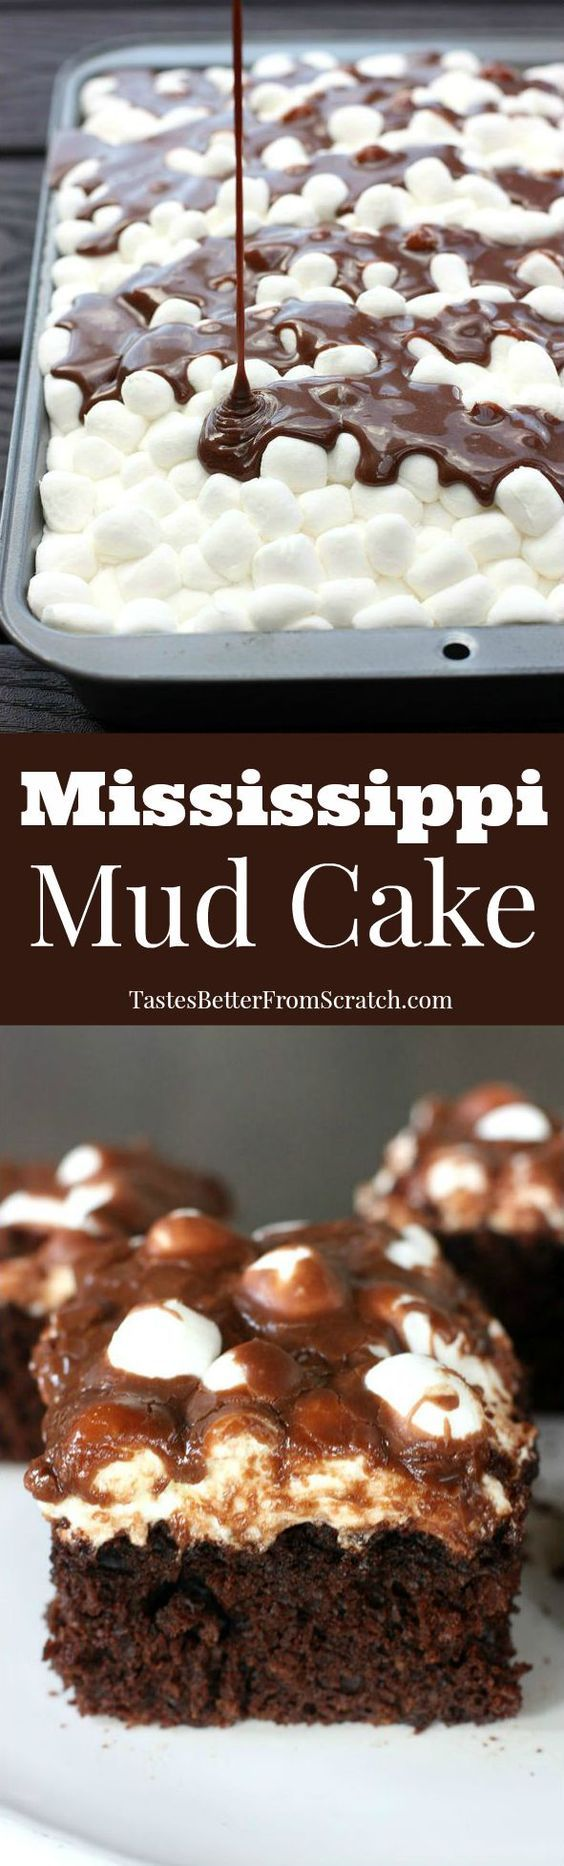 Mississippi Mud Cake--homemade chocolate cake with marshmallows and warm chocolate frosting poured on top! BEST CAKE EVER!(Best Chocolate Cake)